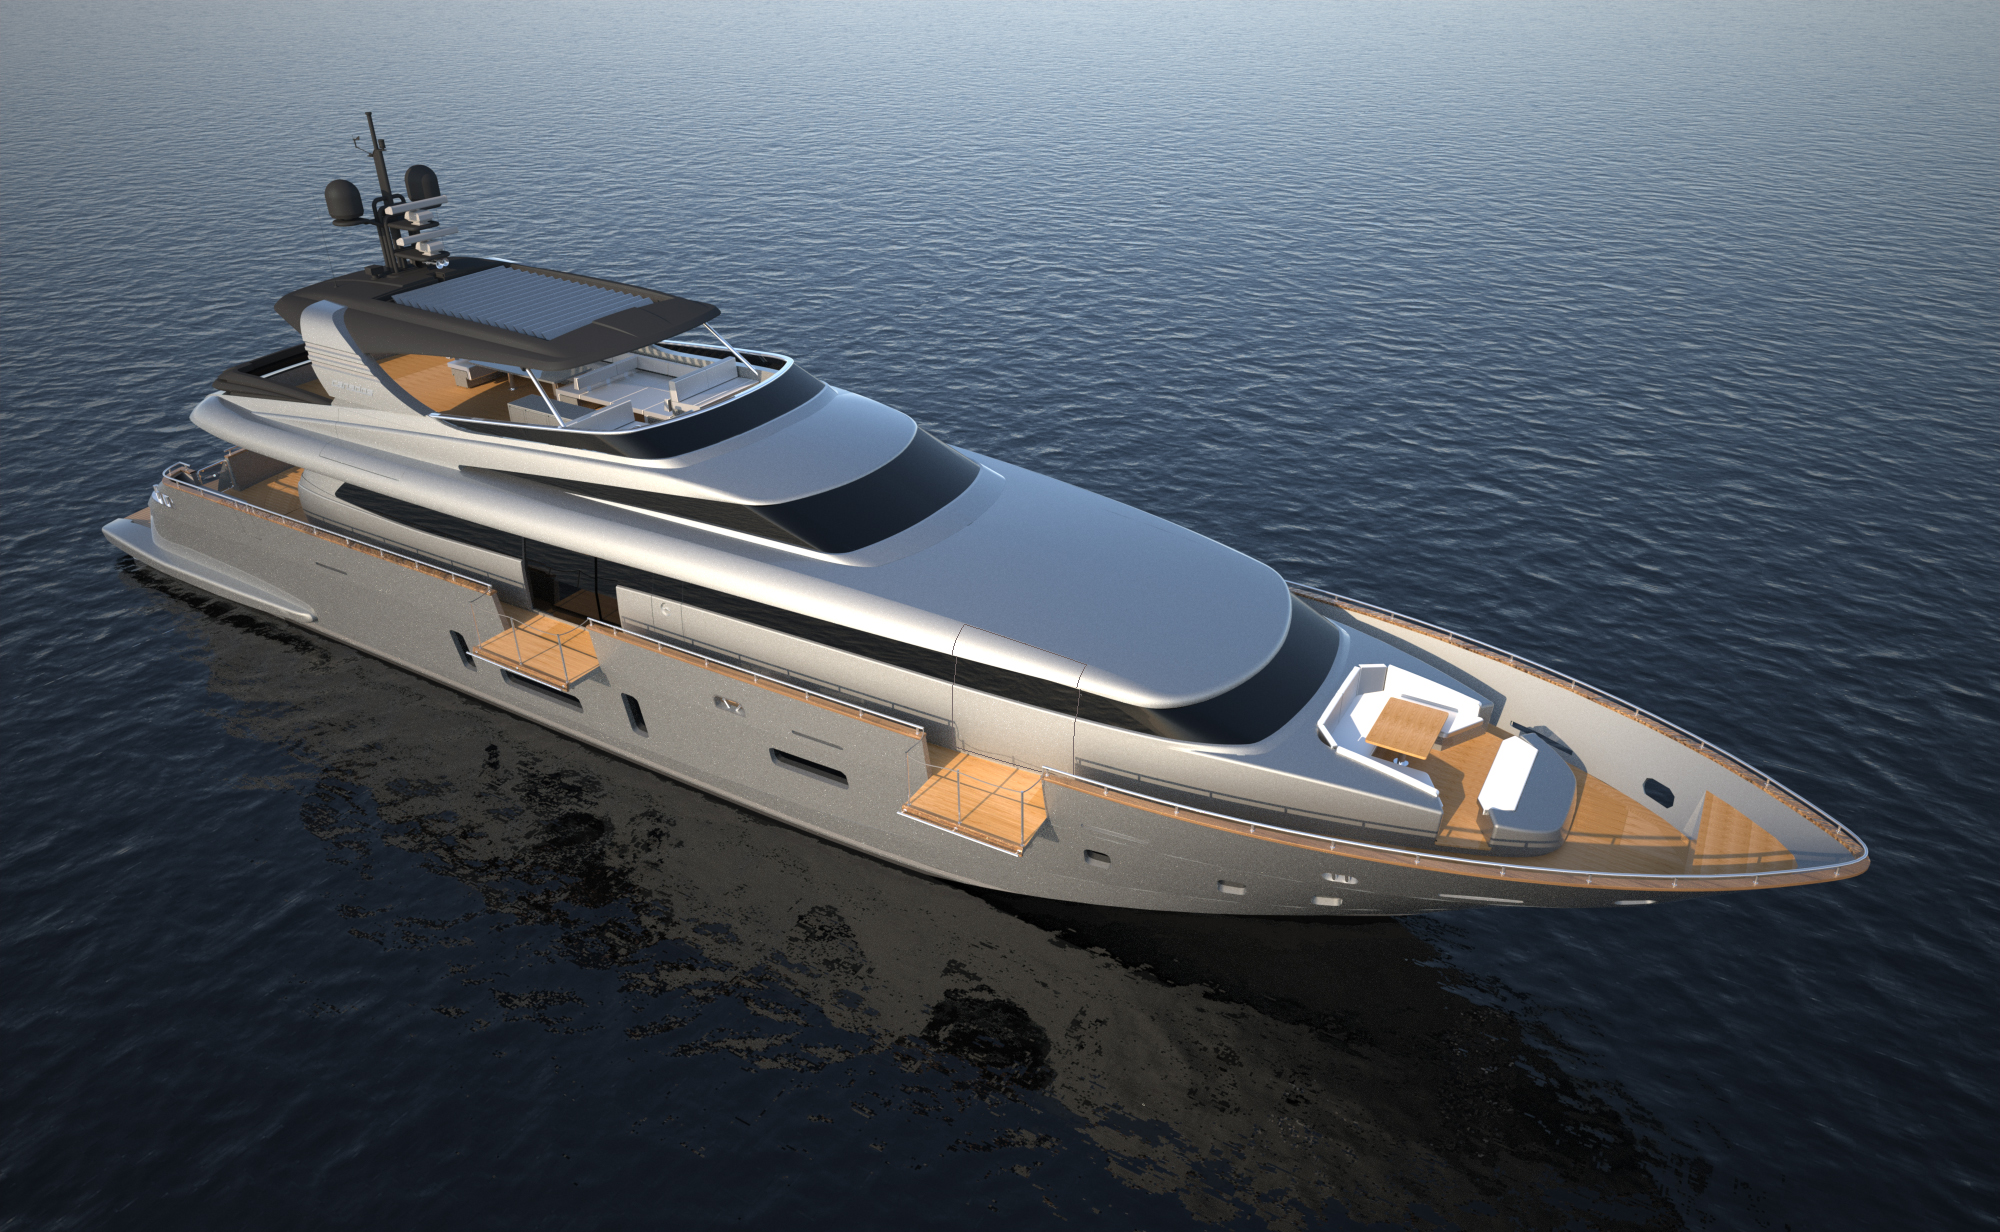 The Luxury Motor Yacht Canados 120 Yacht Charter